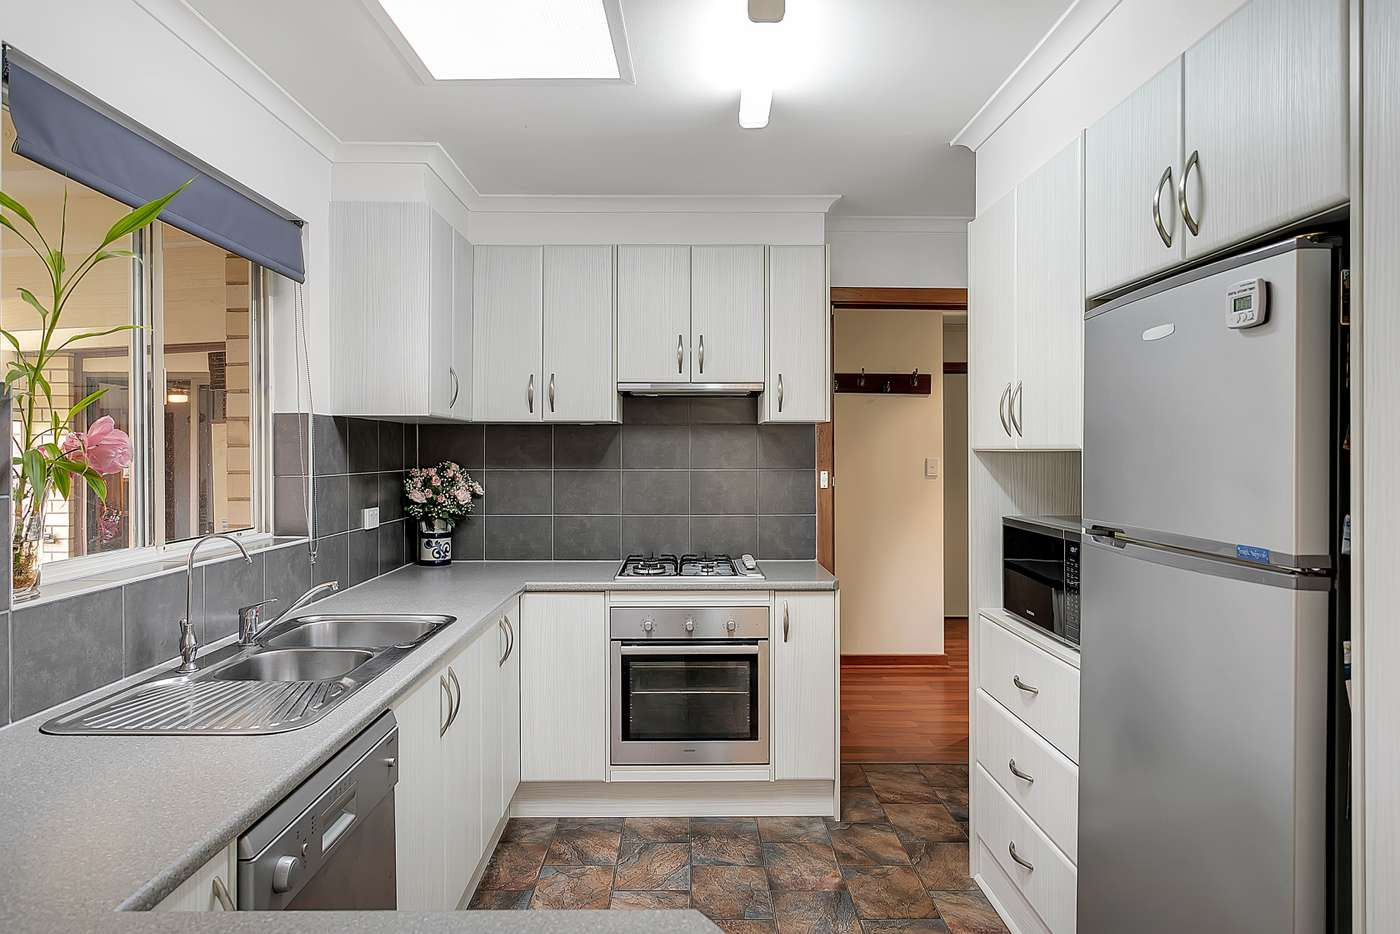 Sixth view of Homely house listing, 10 Fremantle Road, Port Noarlunga South SA 5167